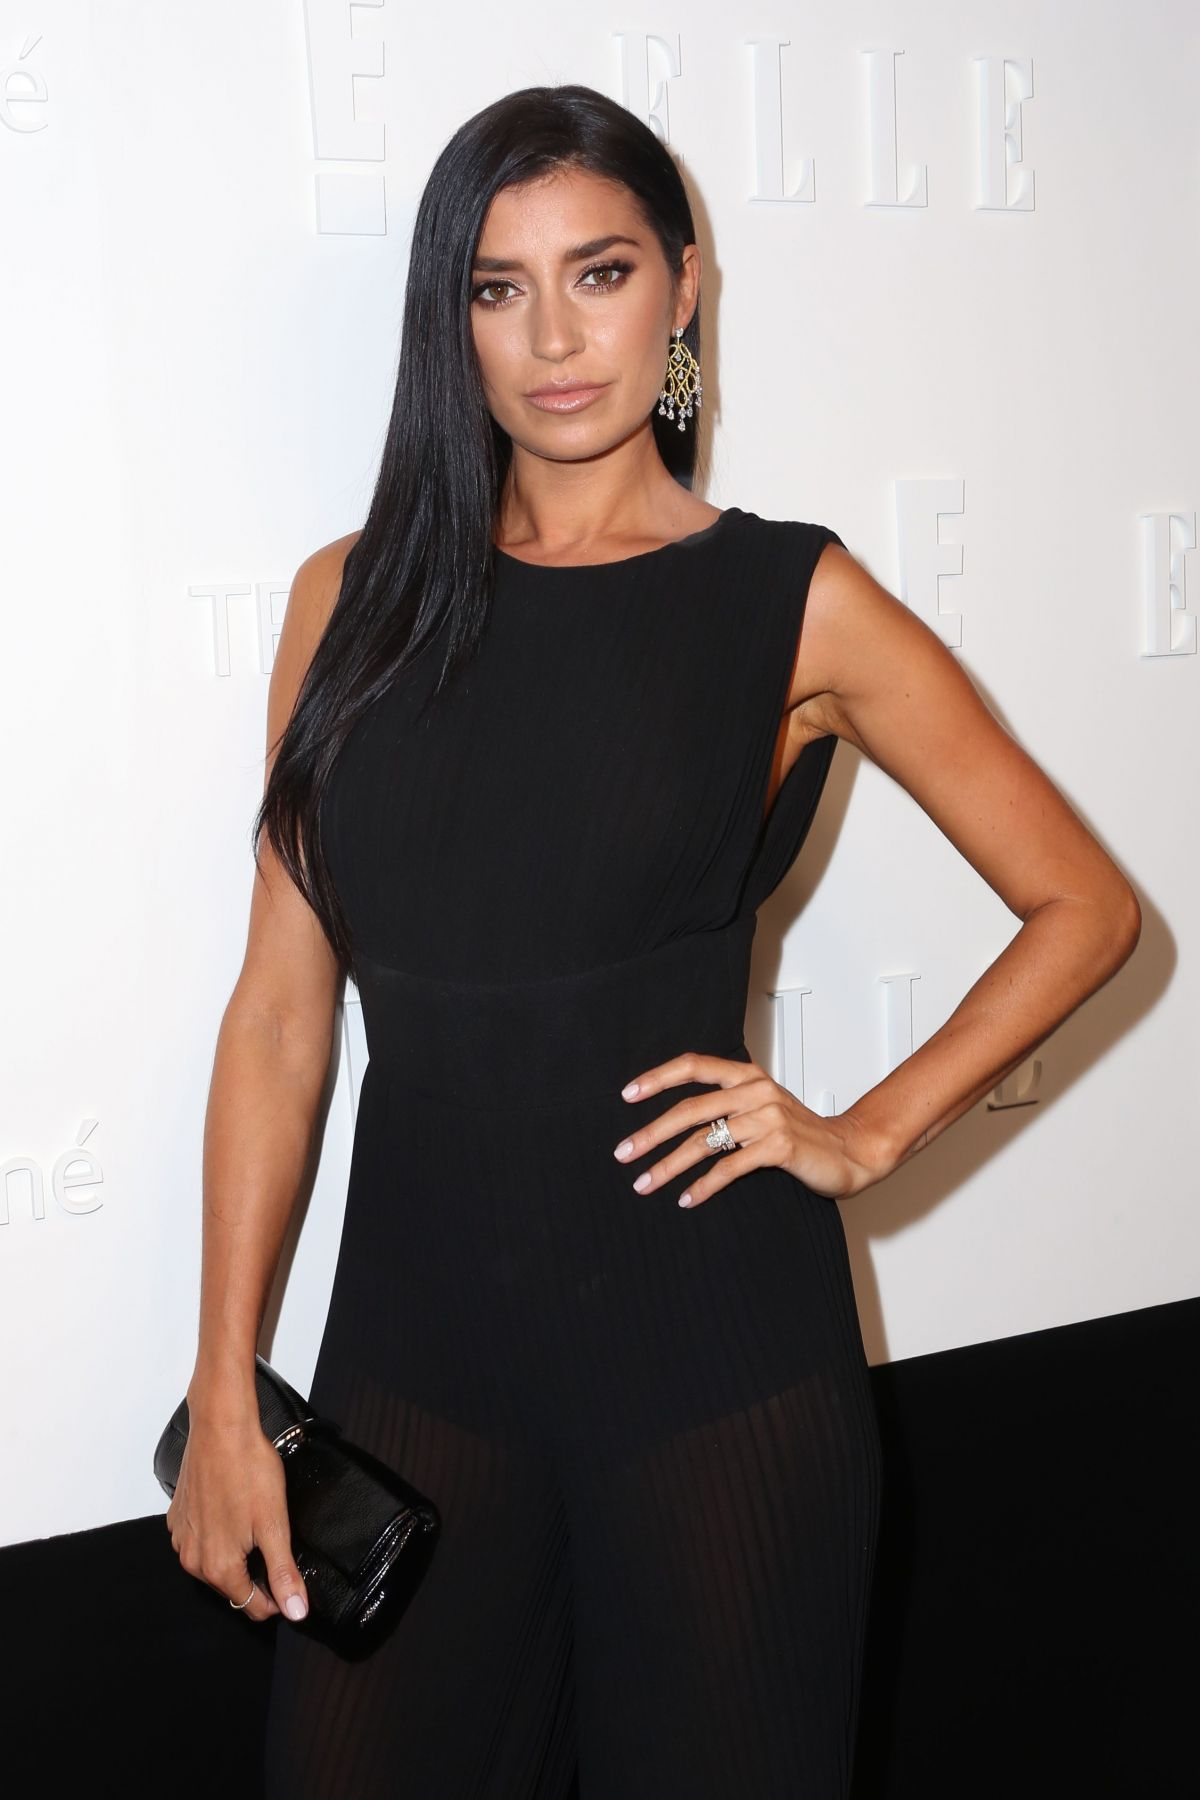 NICOLE WILLIAMS at E!, Elle & Img Host New York Fashion Week Kickoff Party 09/06/2017